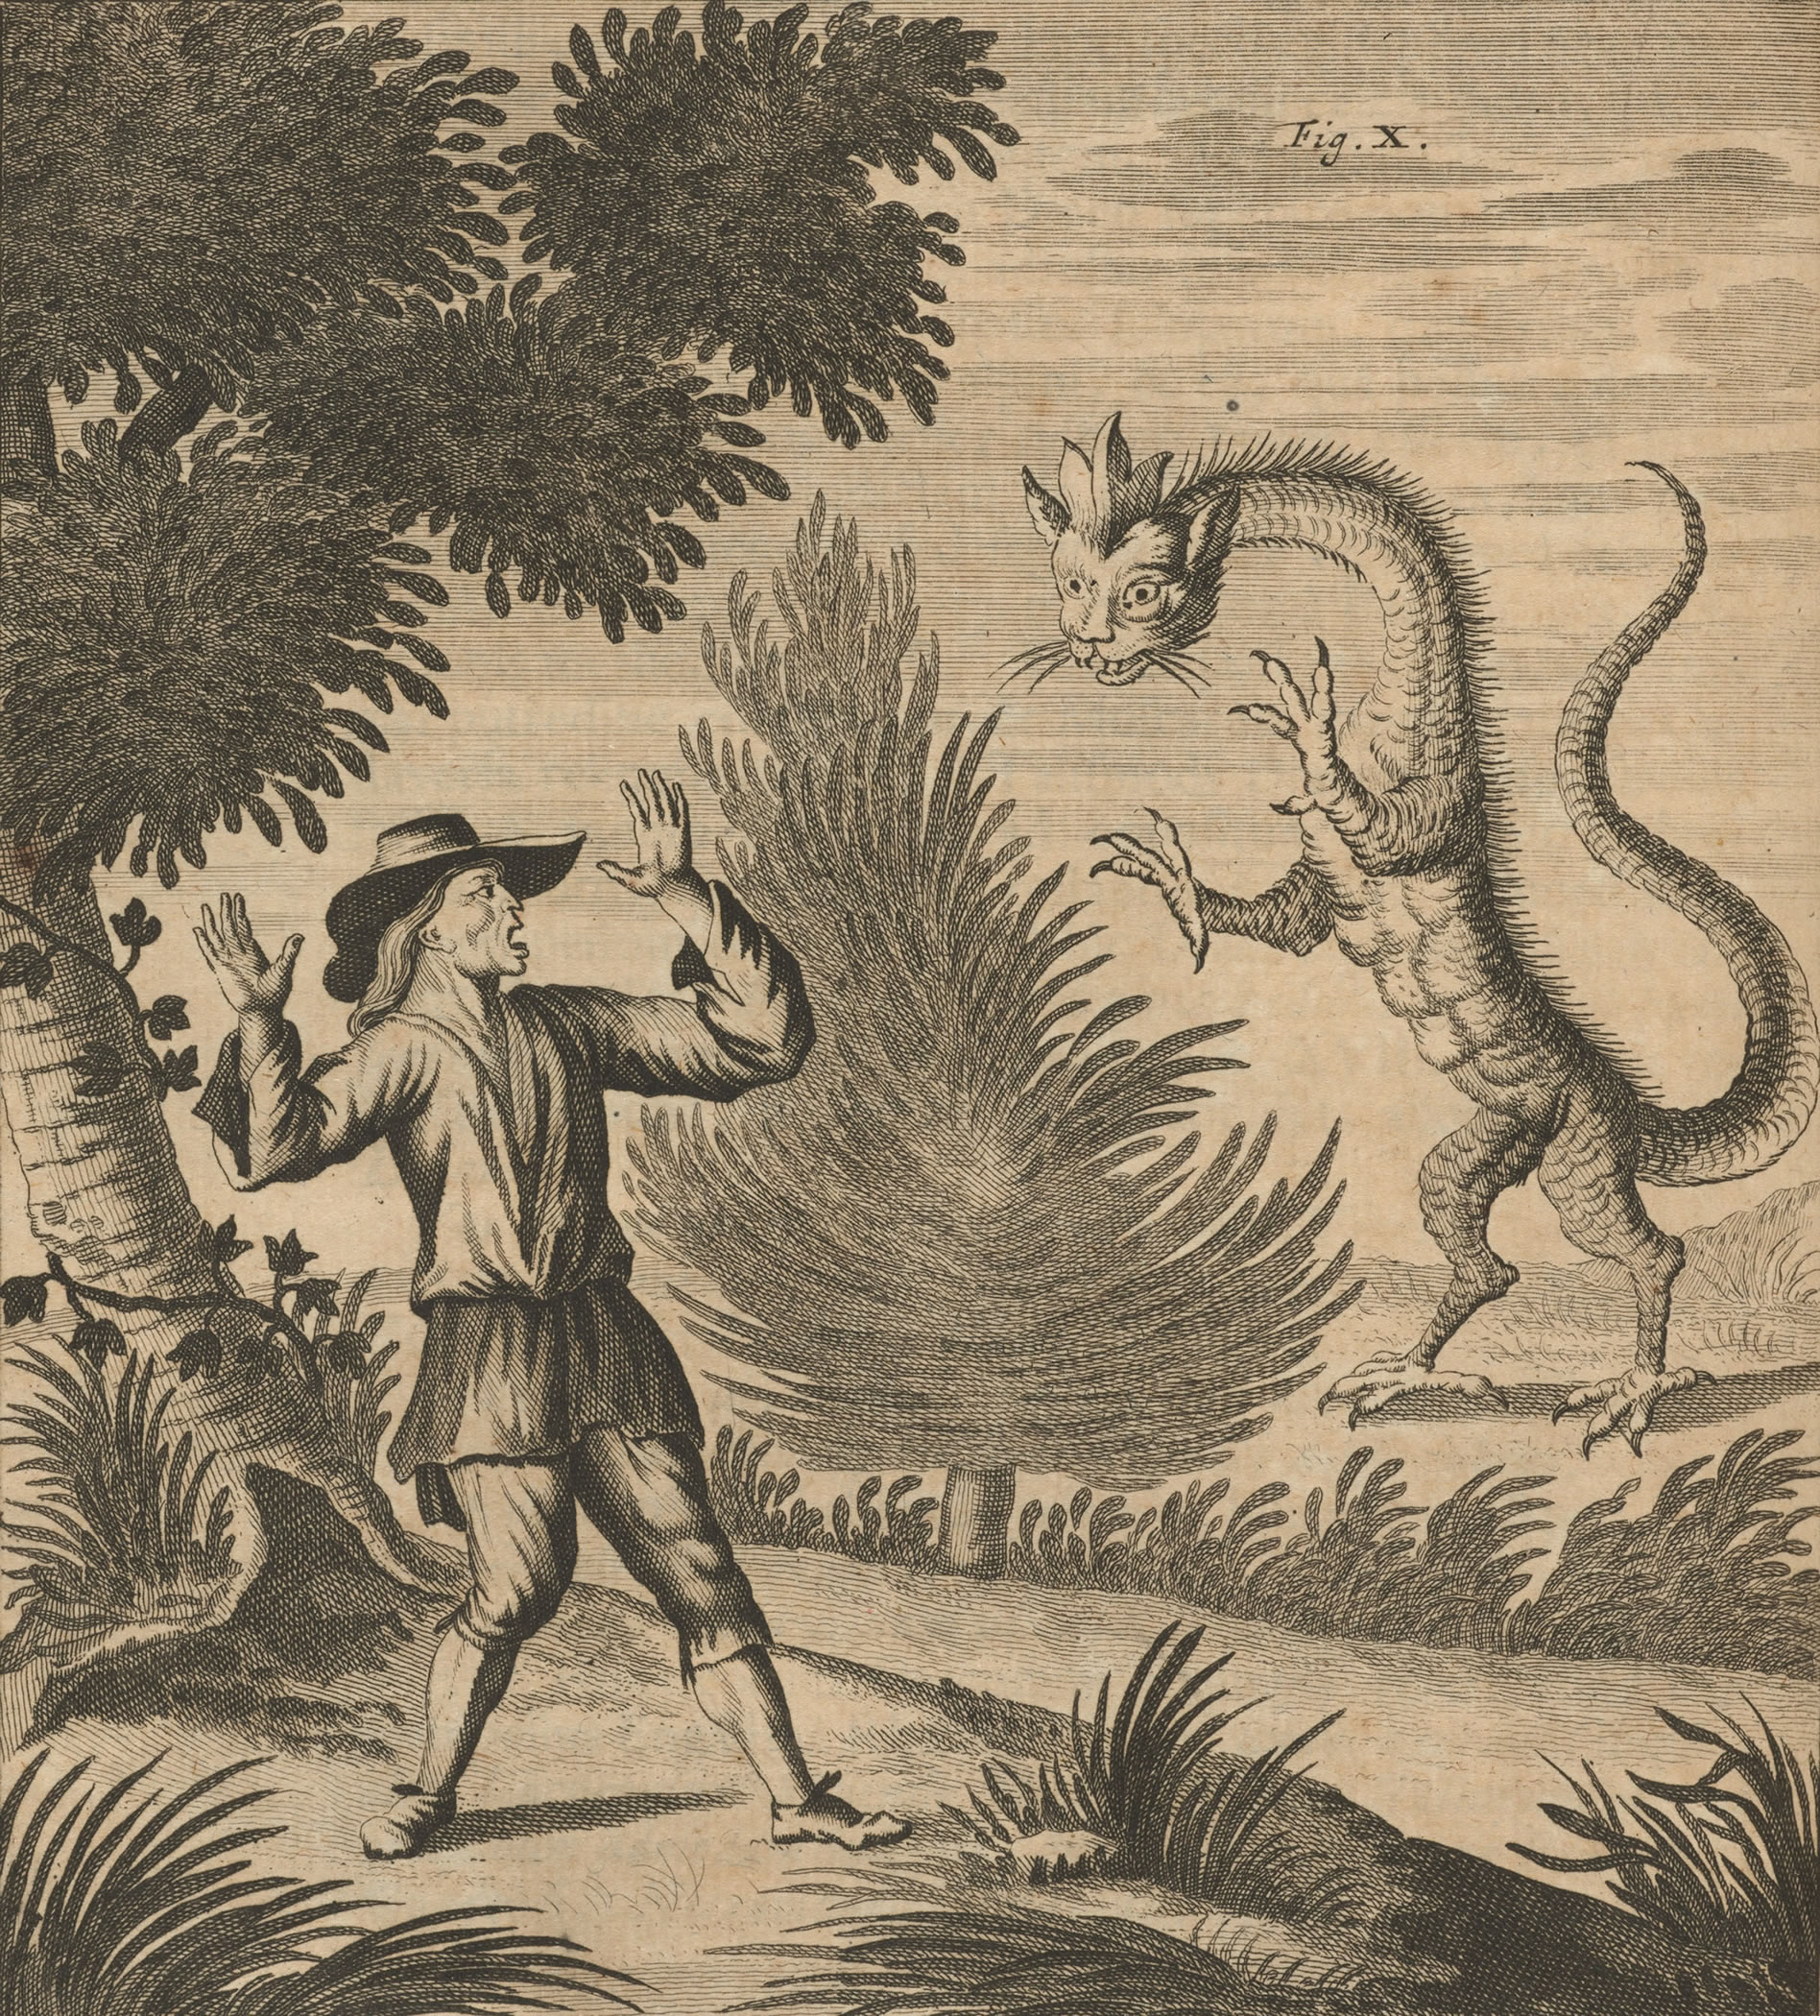 Image 2. Man confronting a Dragon, on or like the ones reported to be seen on the Alps, Johann Jakob Scheuchzer, Zurich, Switzerland, 1723. Source: Summits of Modern Man Image Gallery, 2: http://digitalcommons.wpi.edu/summits-images/2/. (title by author)